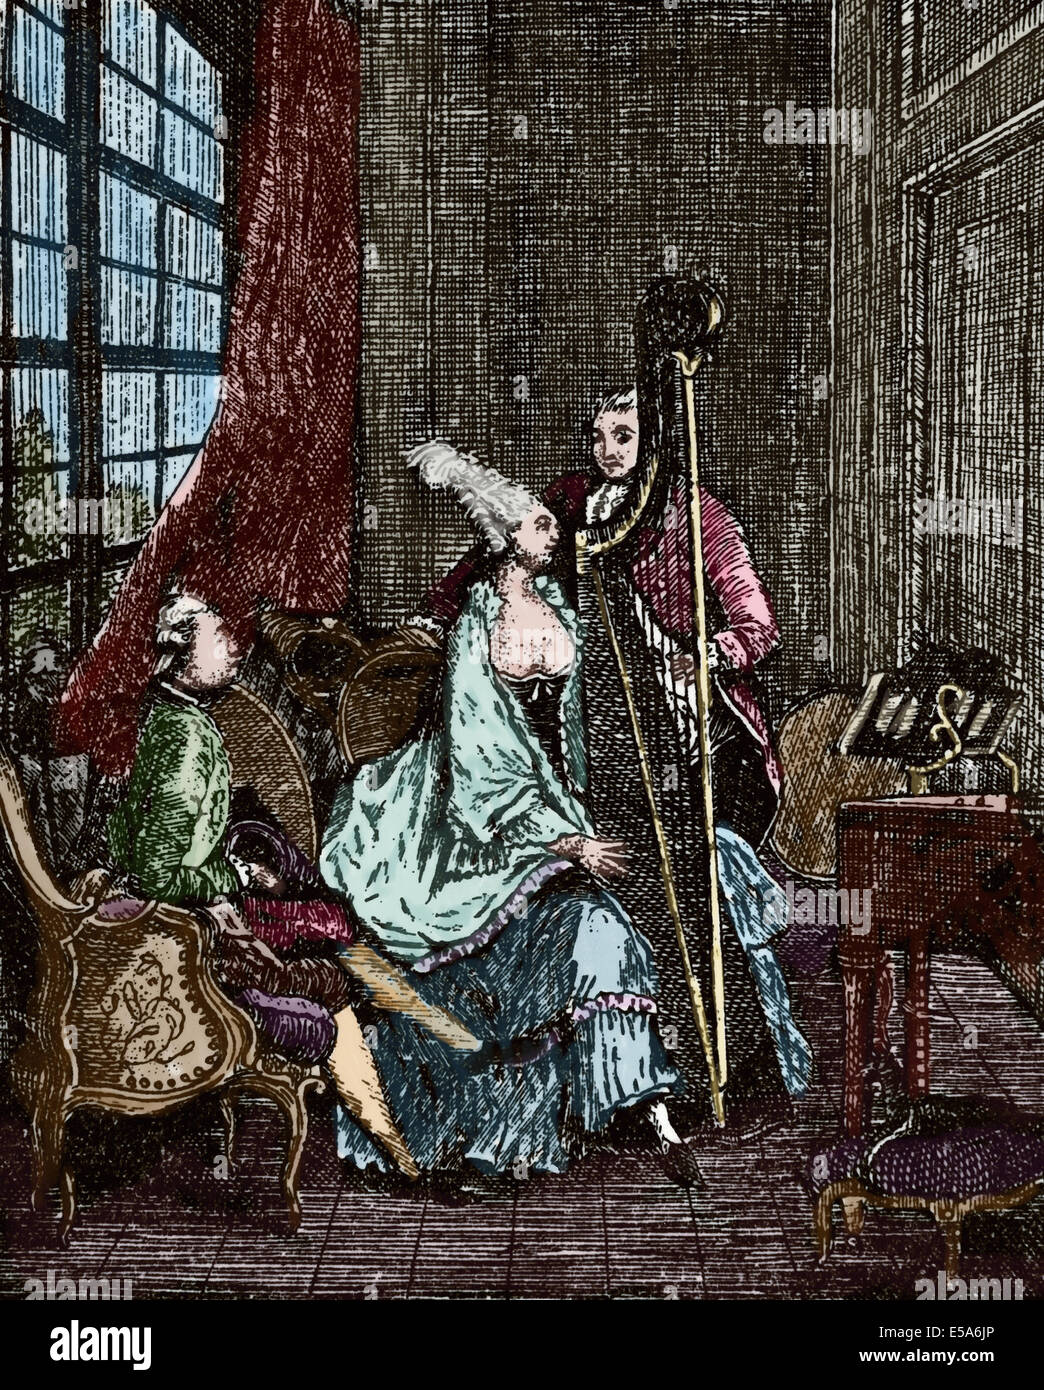 Society. 18th century. Musician. Harpist. Engraving. Colored. - Stock Image